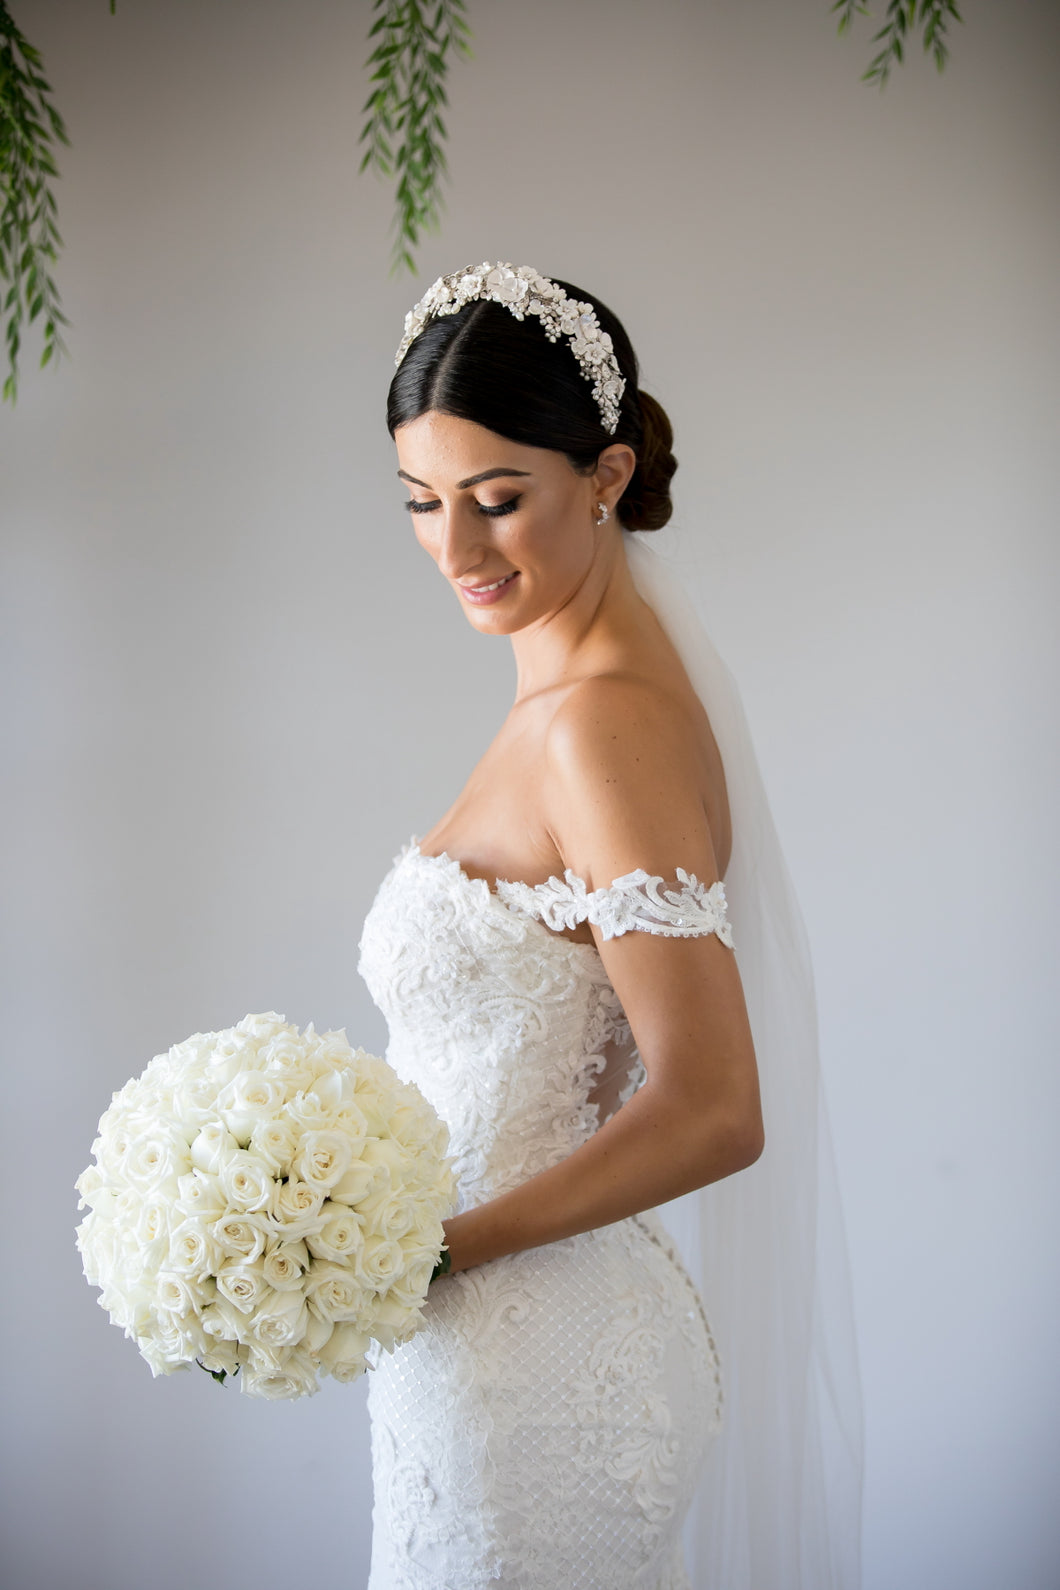 A bride wears a headband of ceramic flowers on her dark hair. There are green leaves in the background